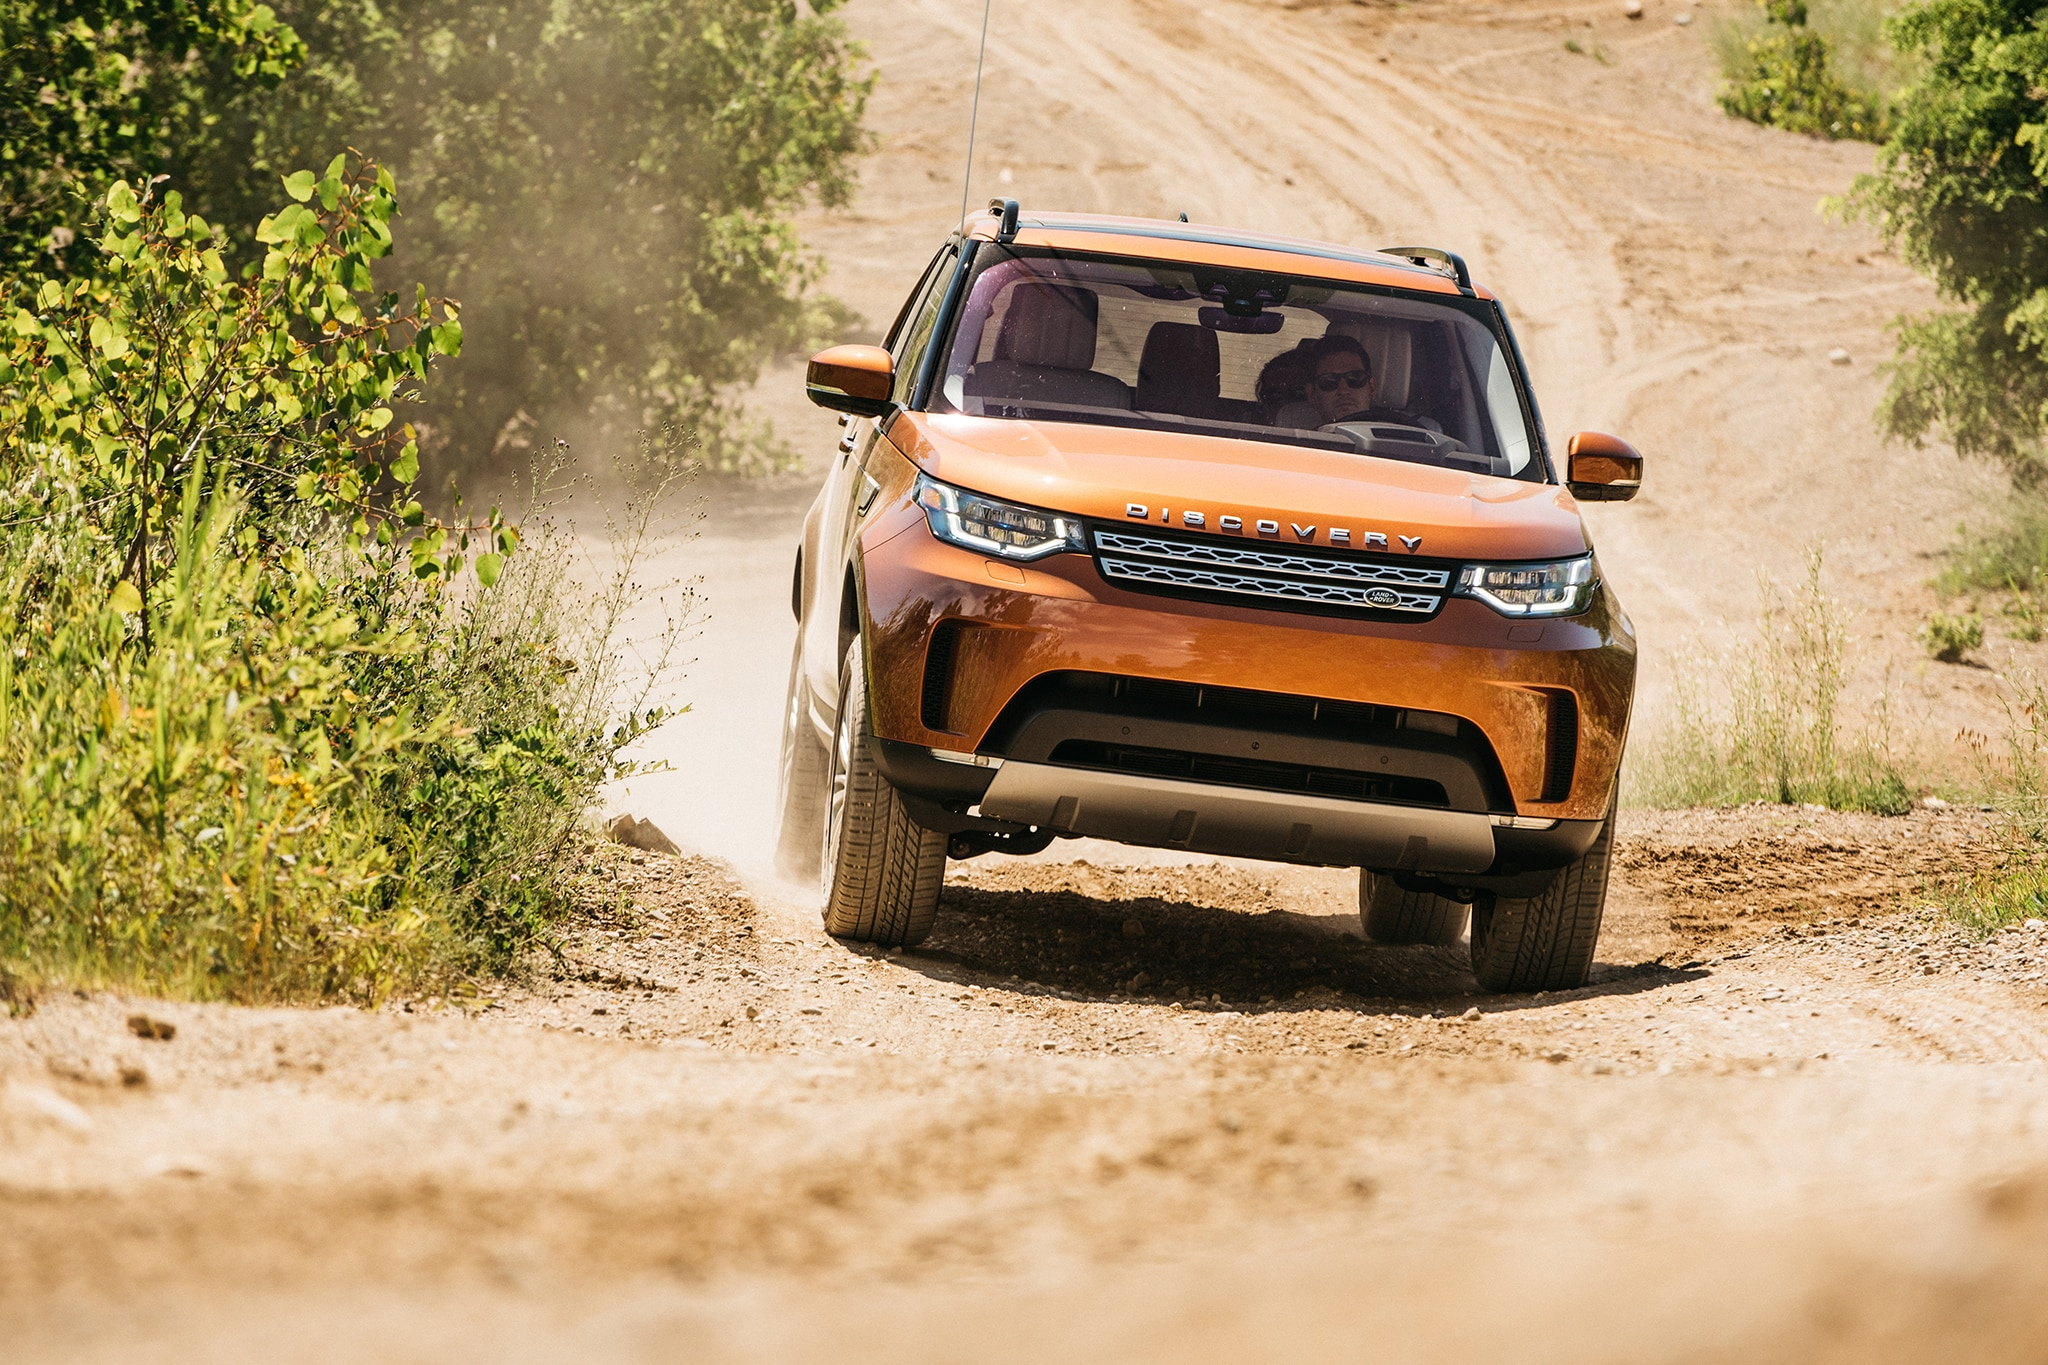 2017 Land Rover Discovery Td6 HSE Front View In Motion 09